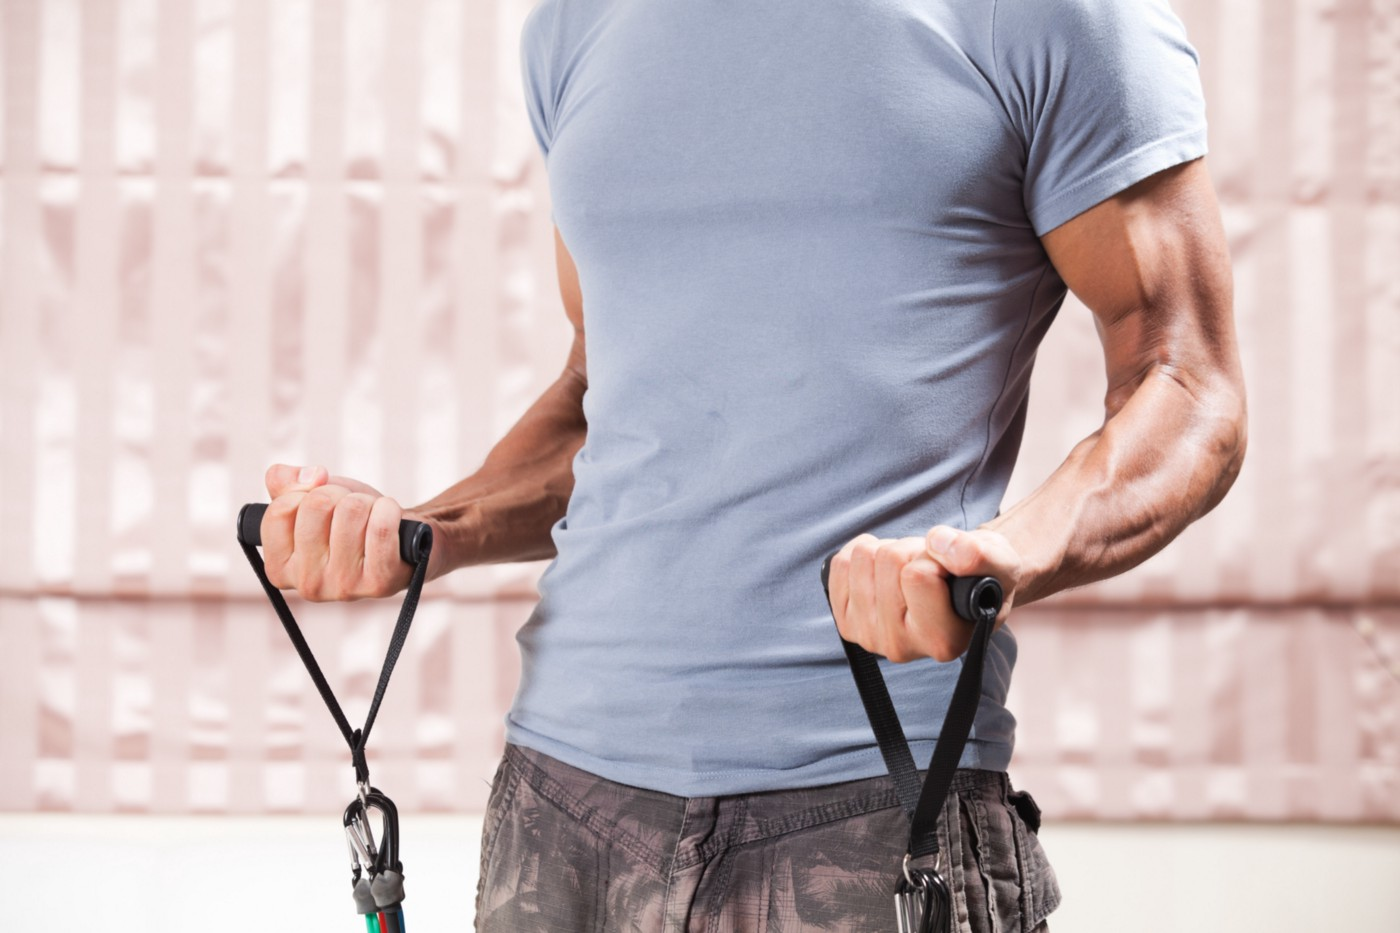 A muscular person works out.